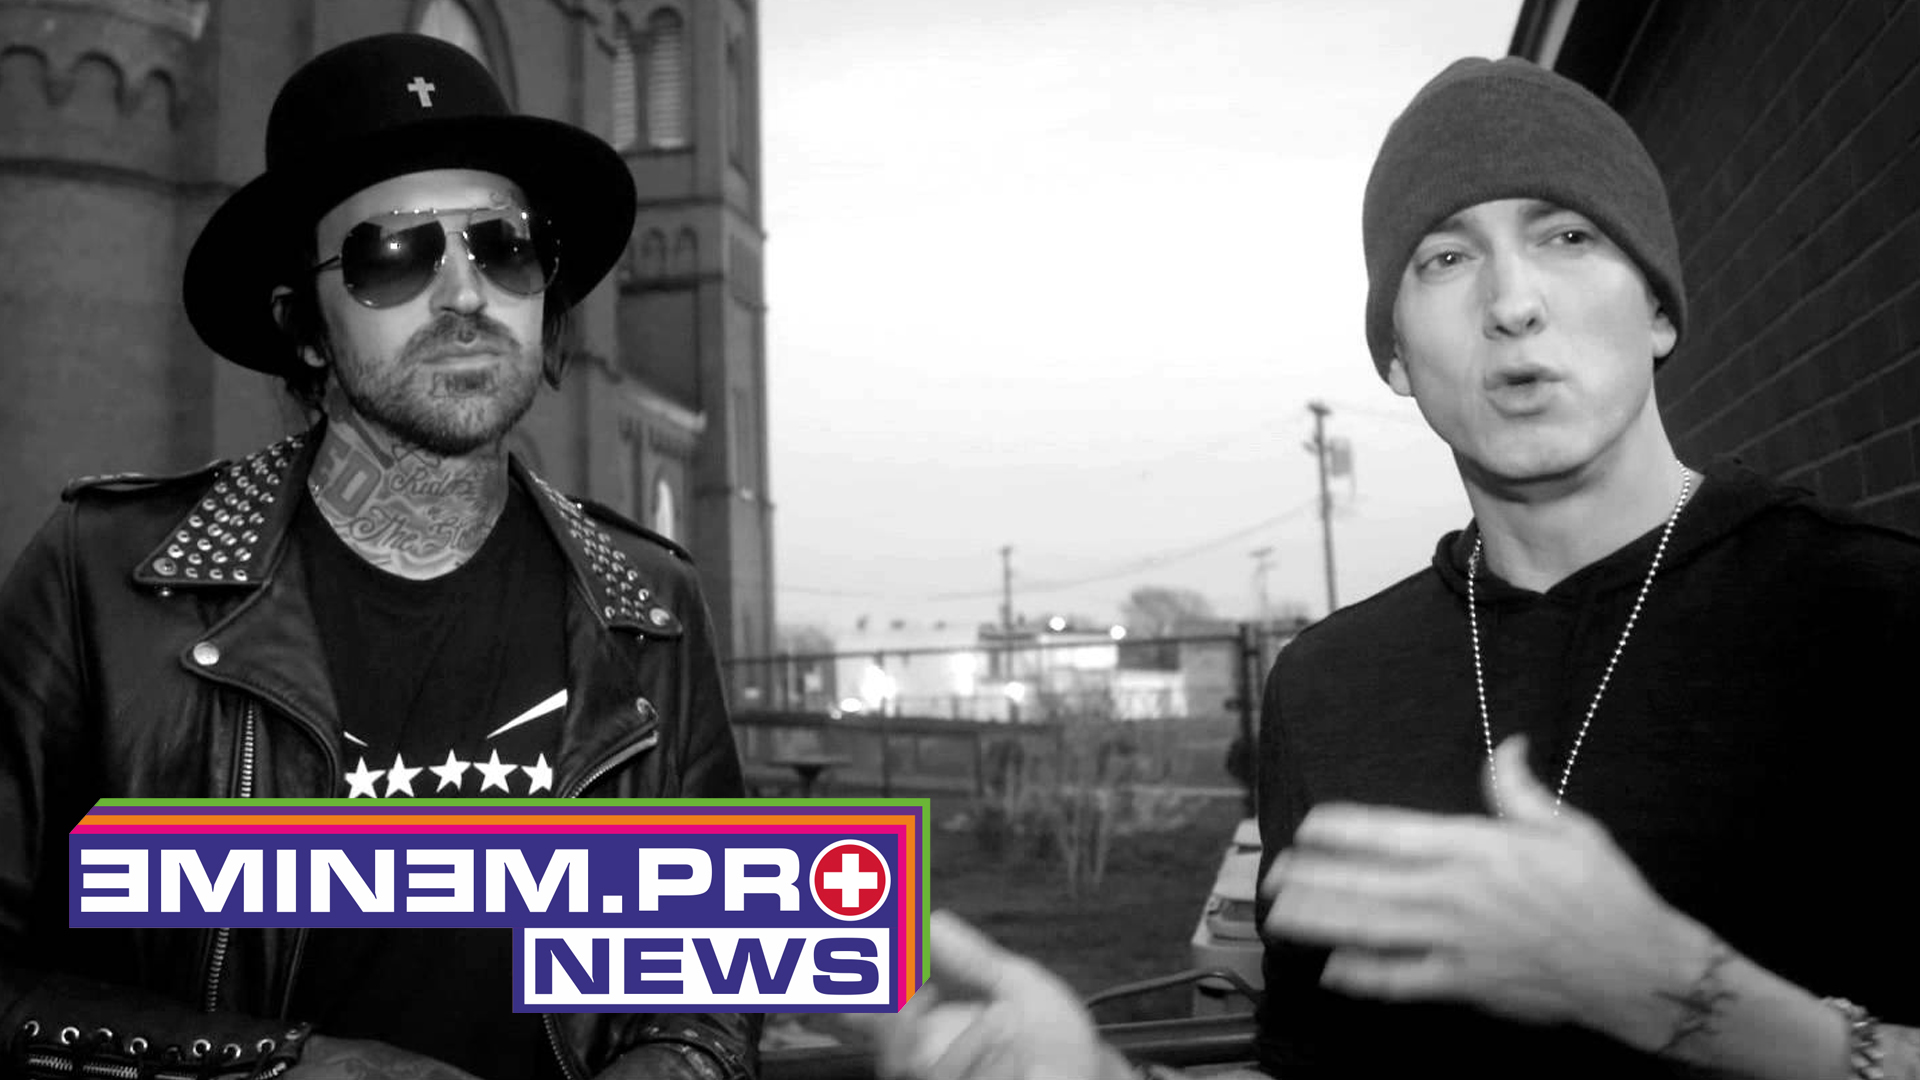 Eminem's Shady 2.0 crew is no more. Yelawolf leaves Shady Records :(